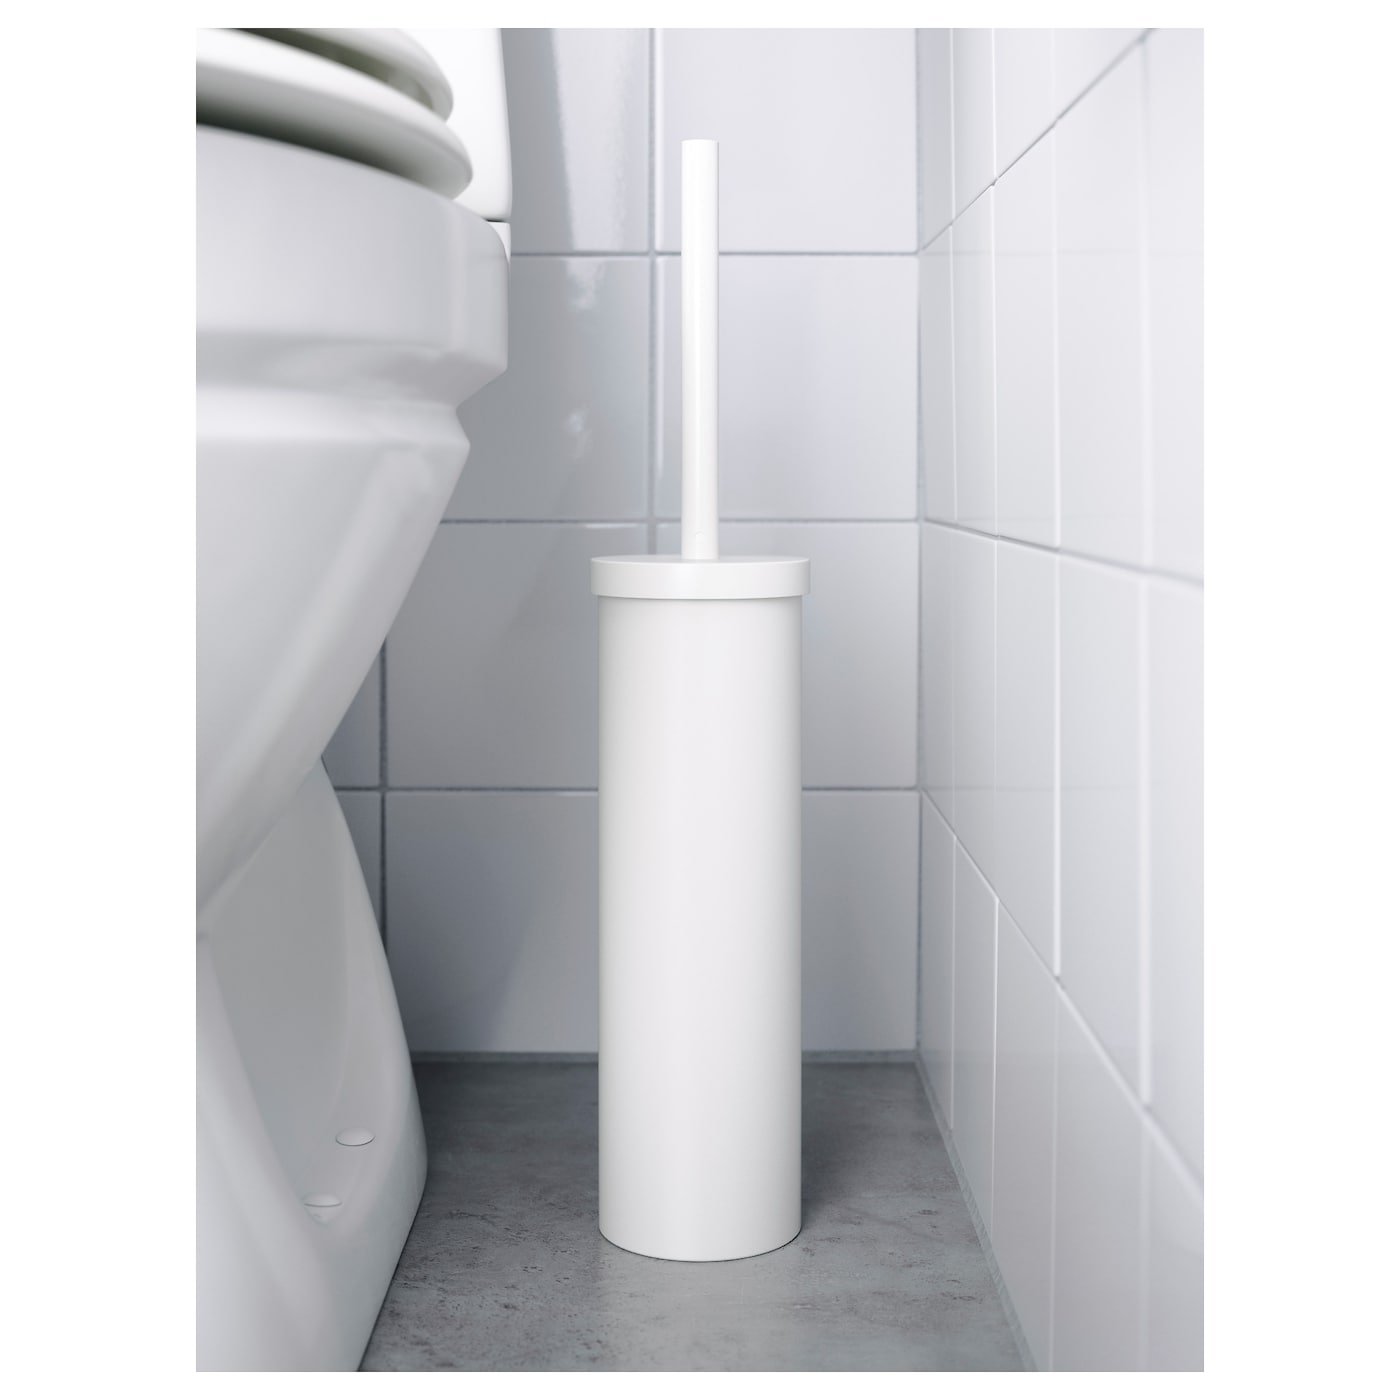 IKEA ENUDDEN toilet brush